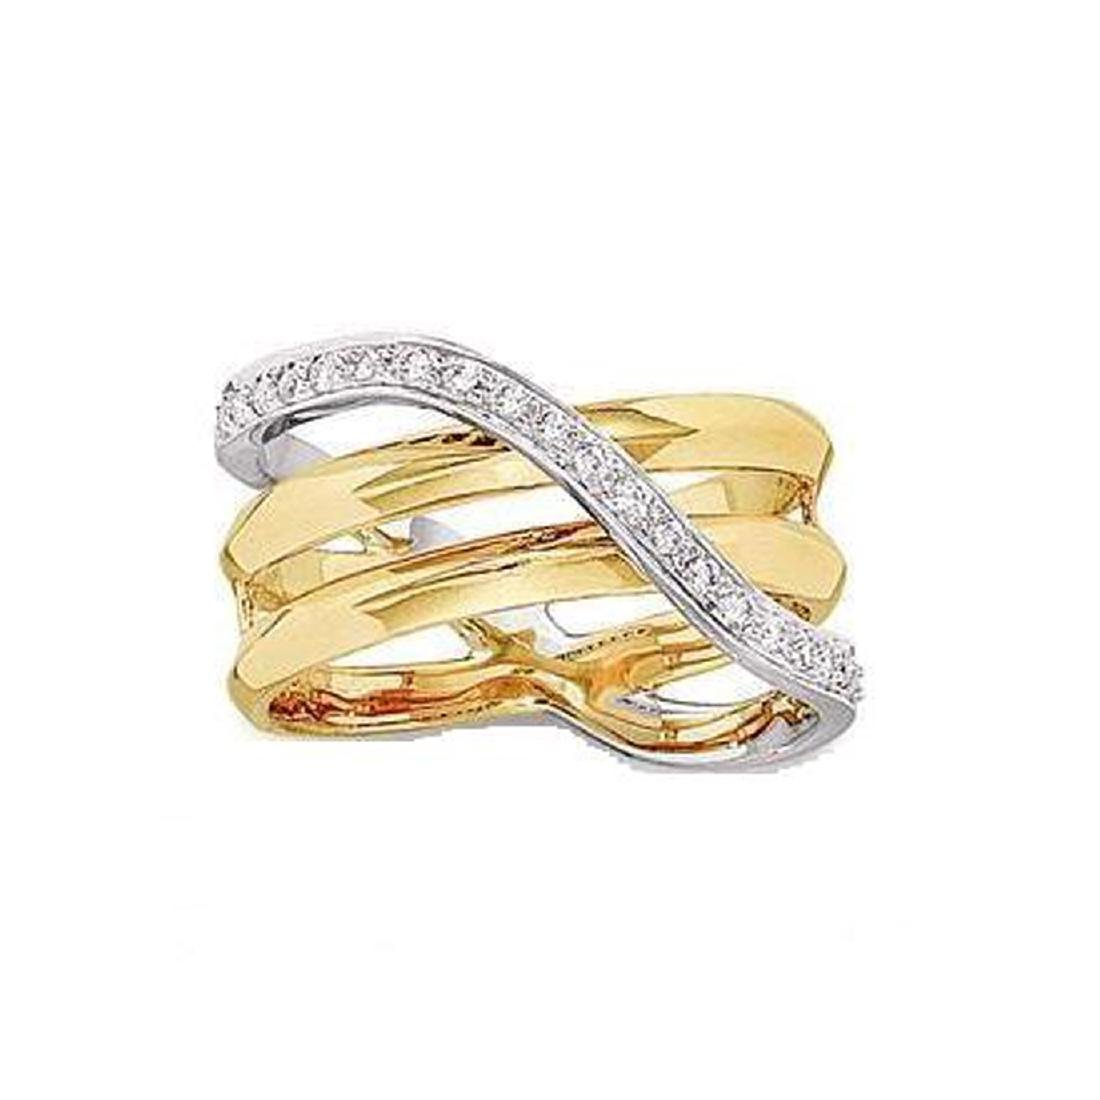 *Fine Jewelry, 14KT Two-Tone Gold, 0.32CT Diamond Ring